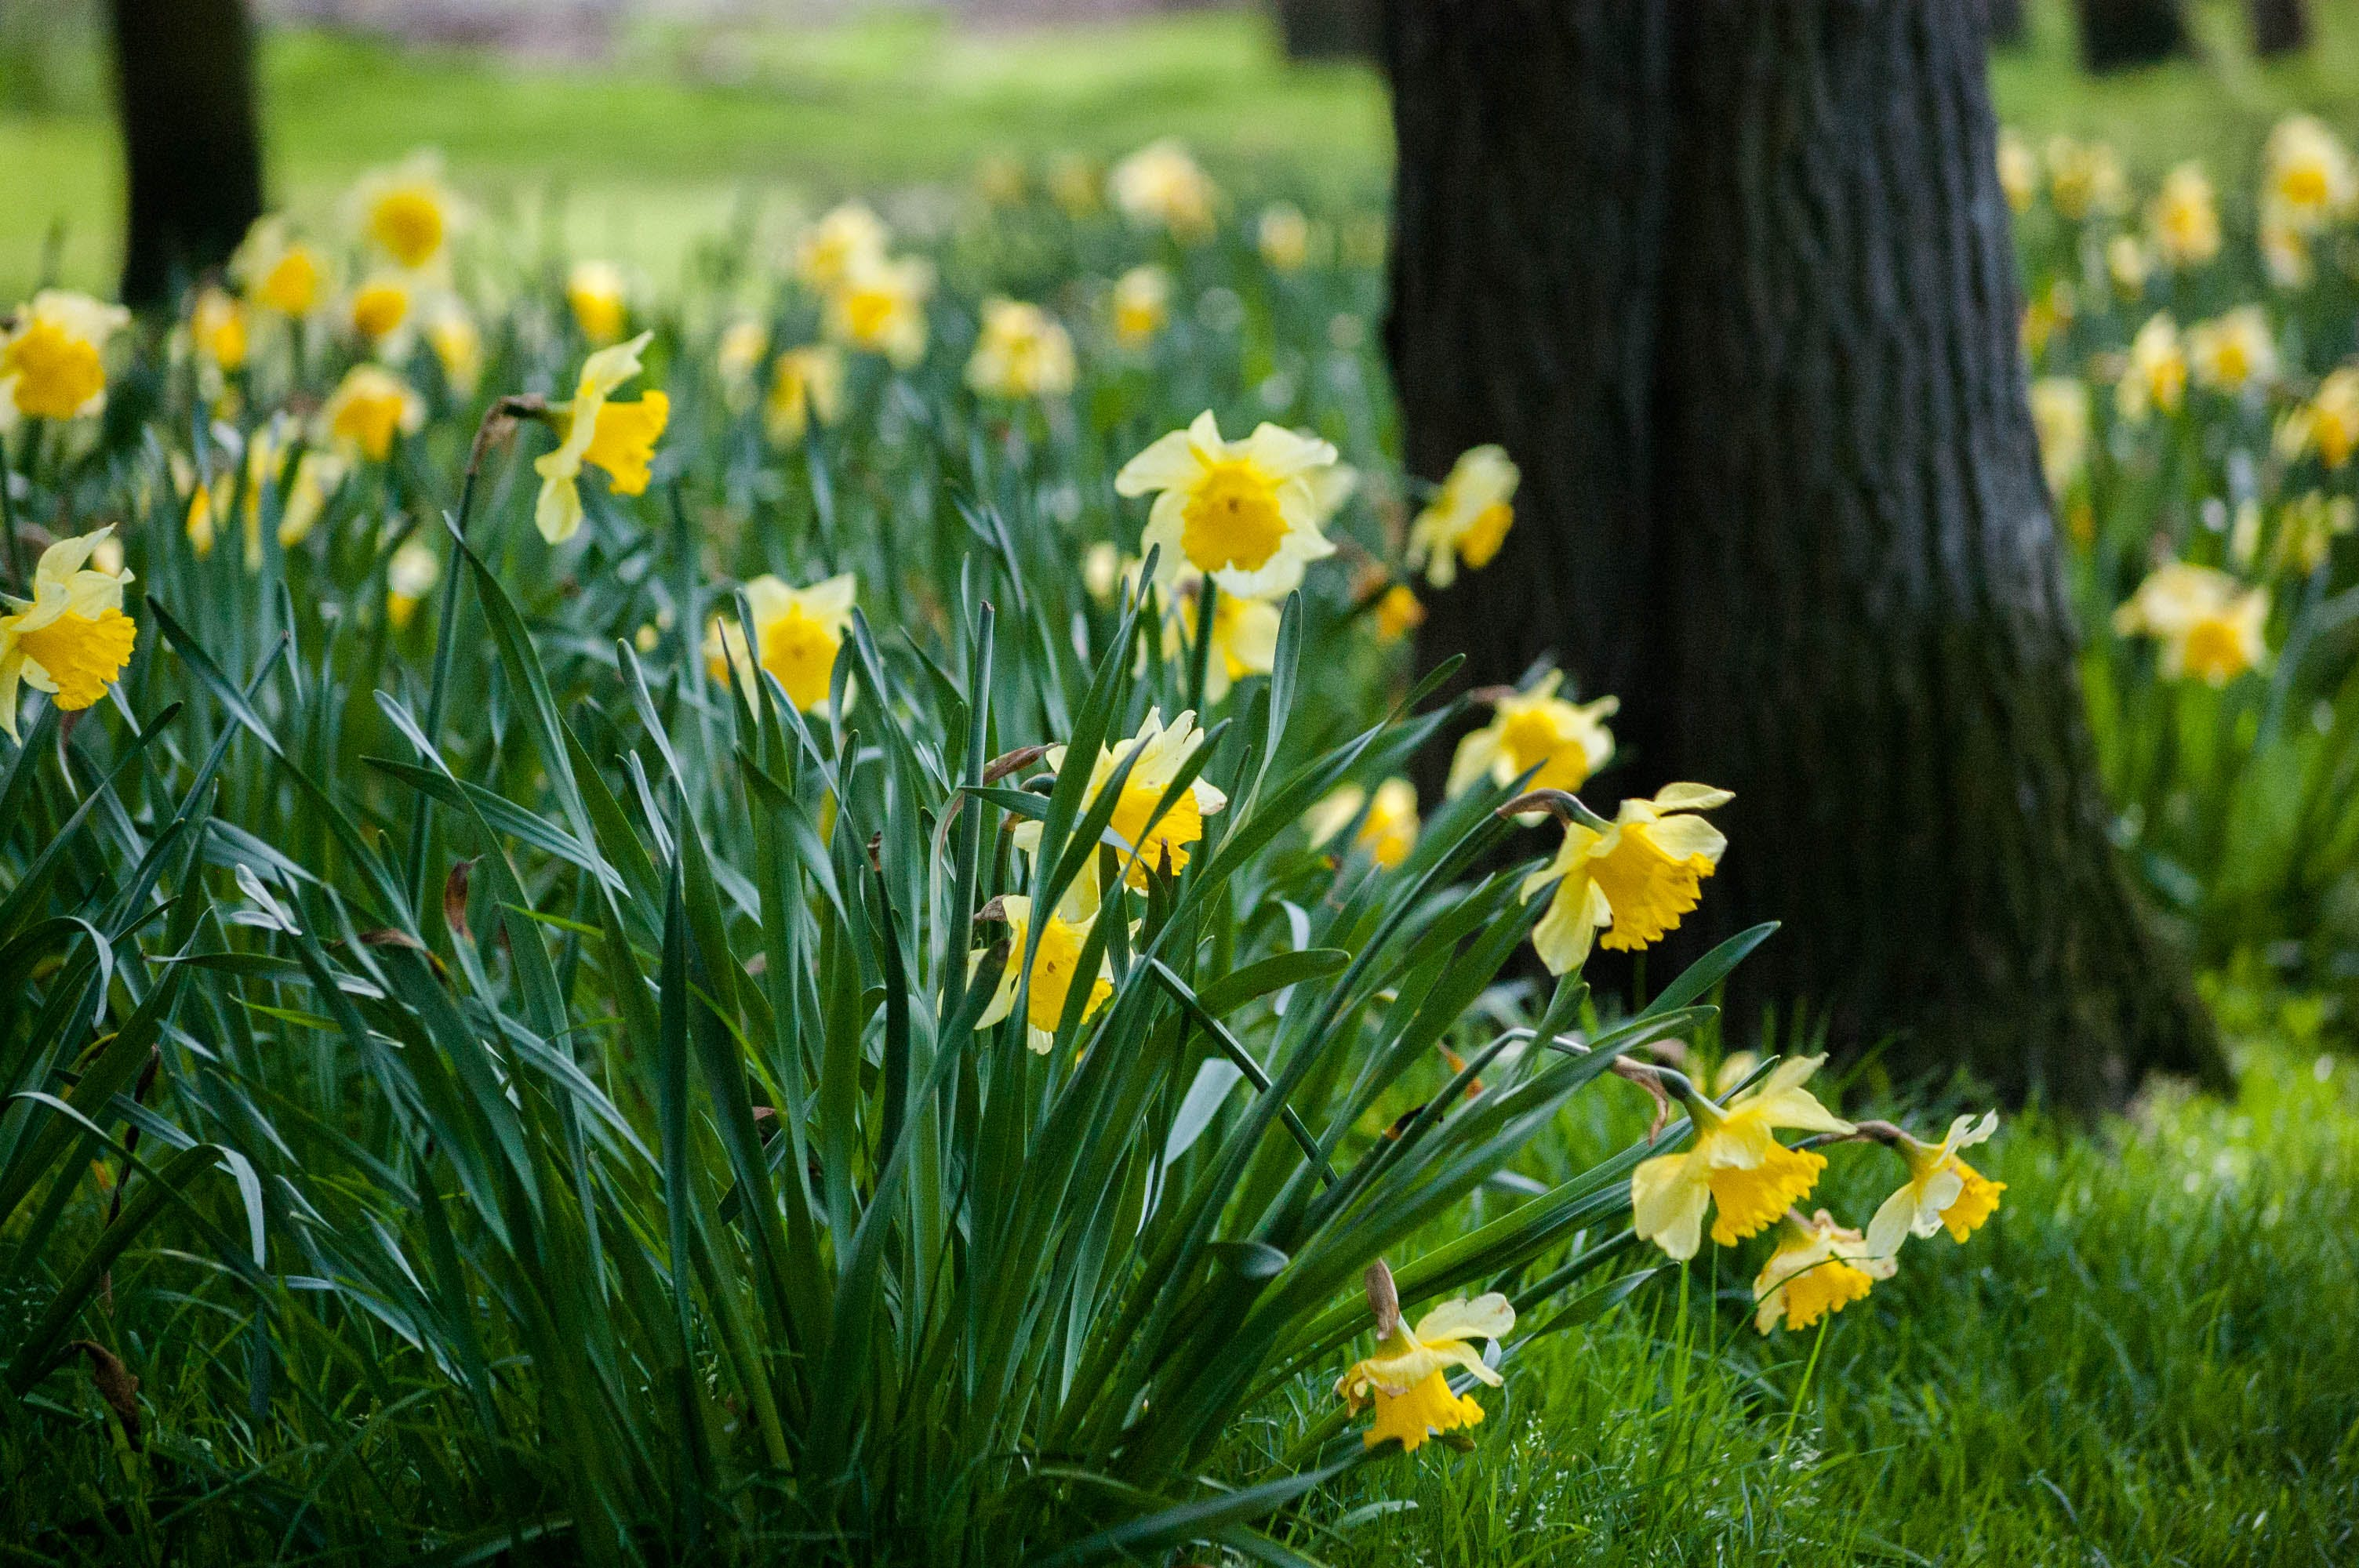 Yellow Petaled Flowers on Grass Beside Trees